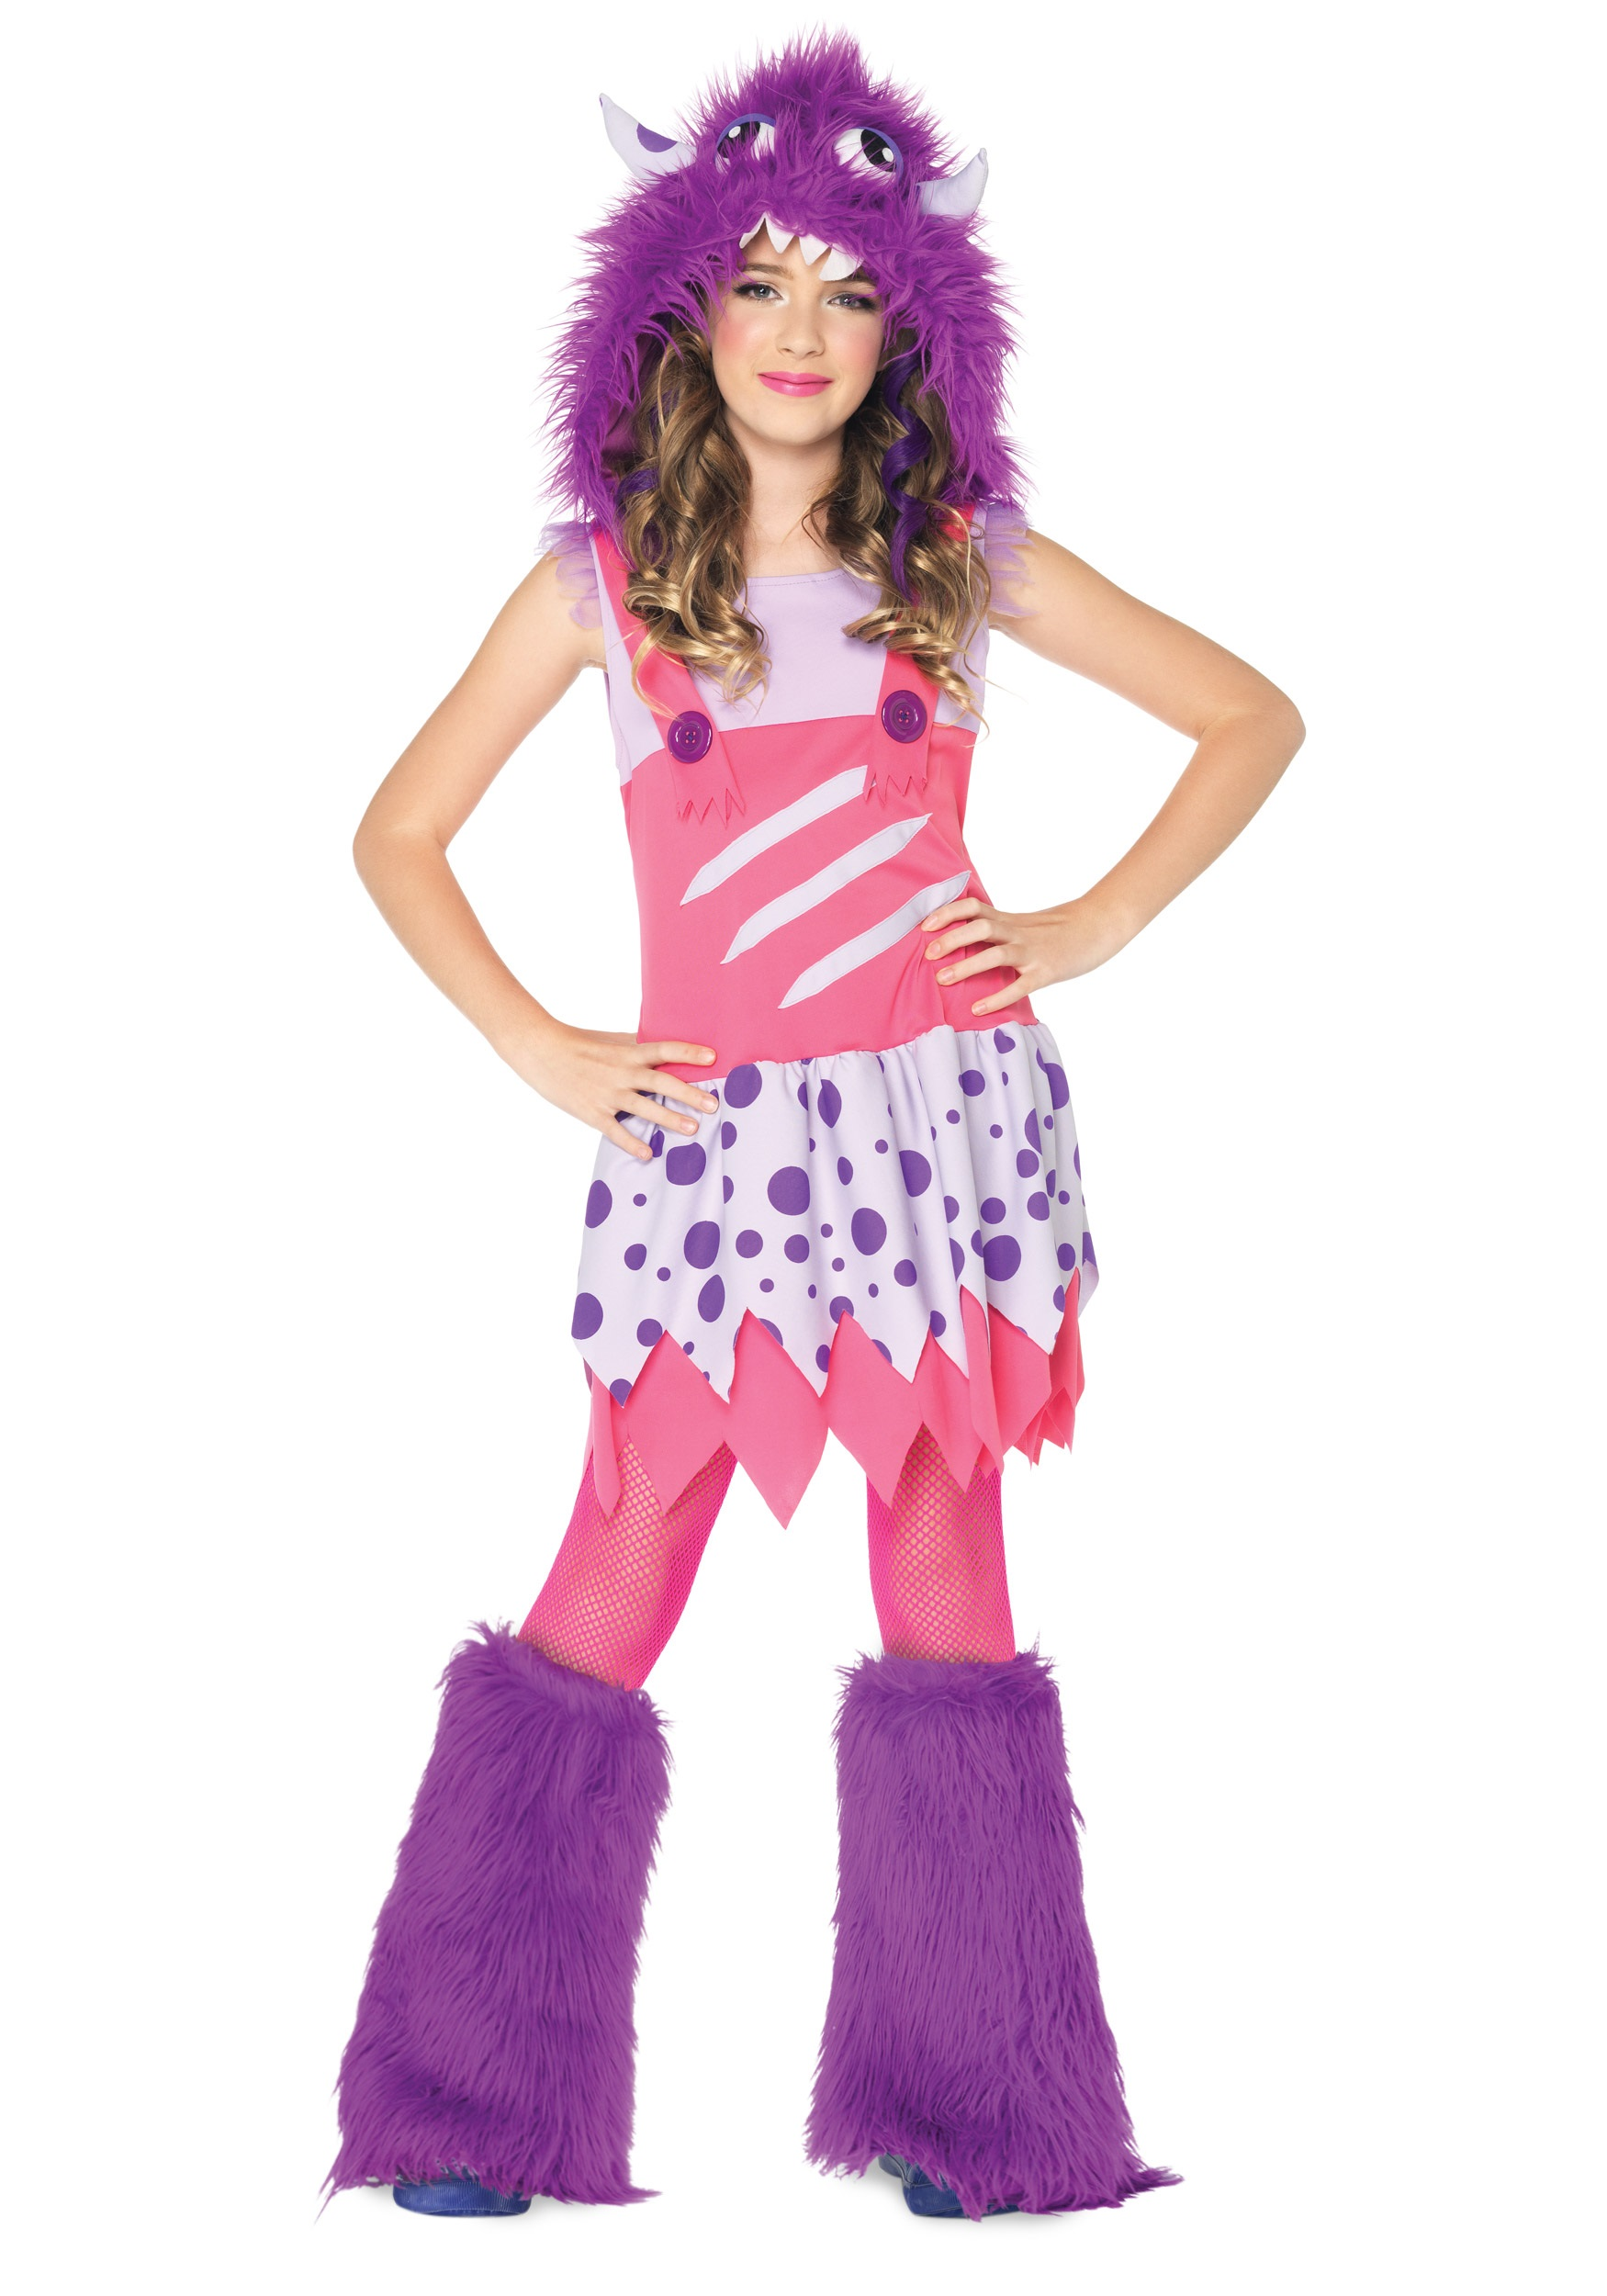 Girls Furball Monster Costume  sc 1 st  Halloween Costumes & Girls Furball Monster Costume - Halloween Costume Ideas 2018